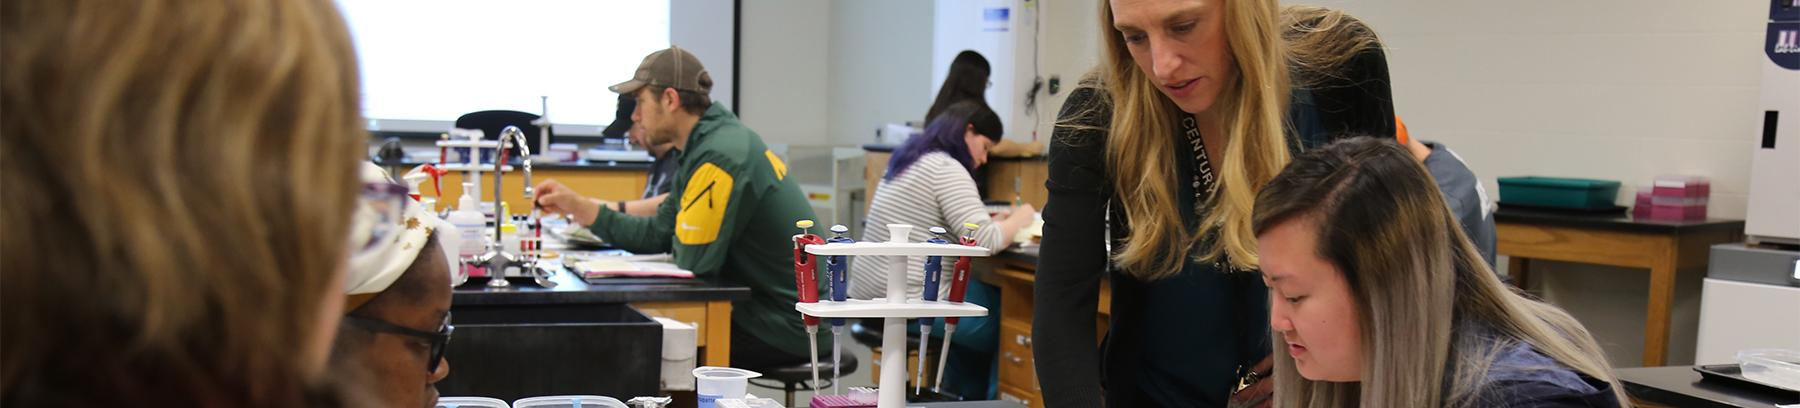 Instructor assisting students in a science lab.